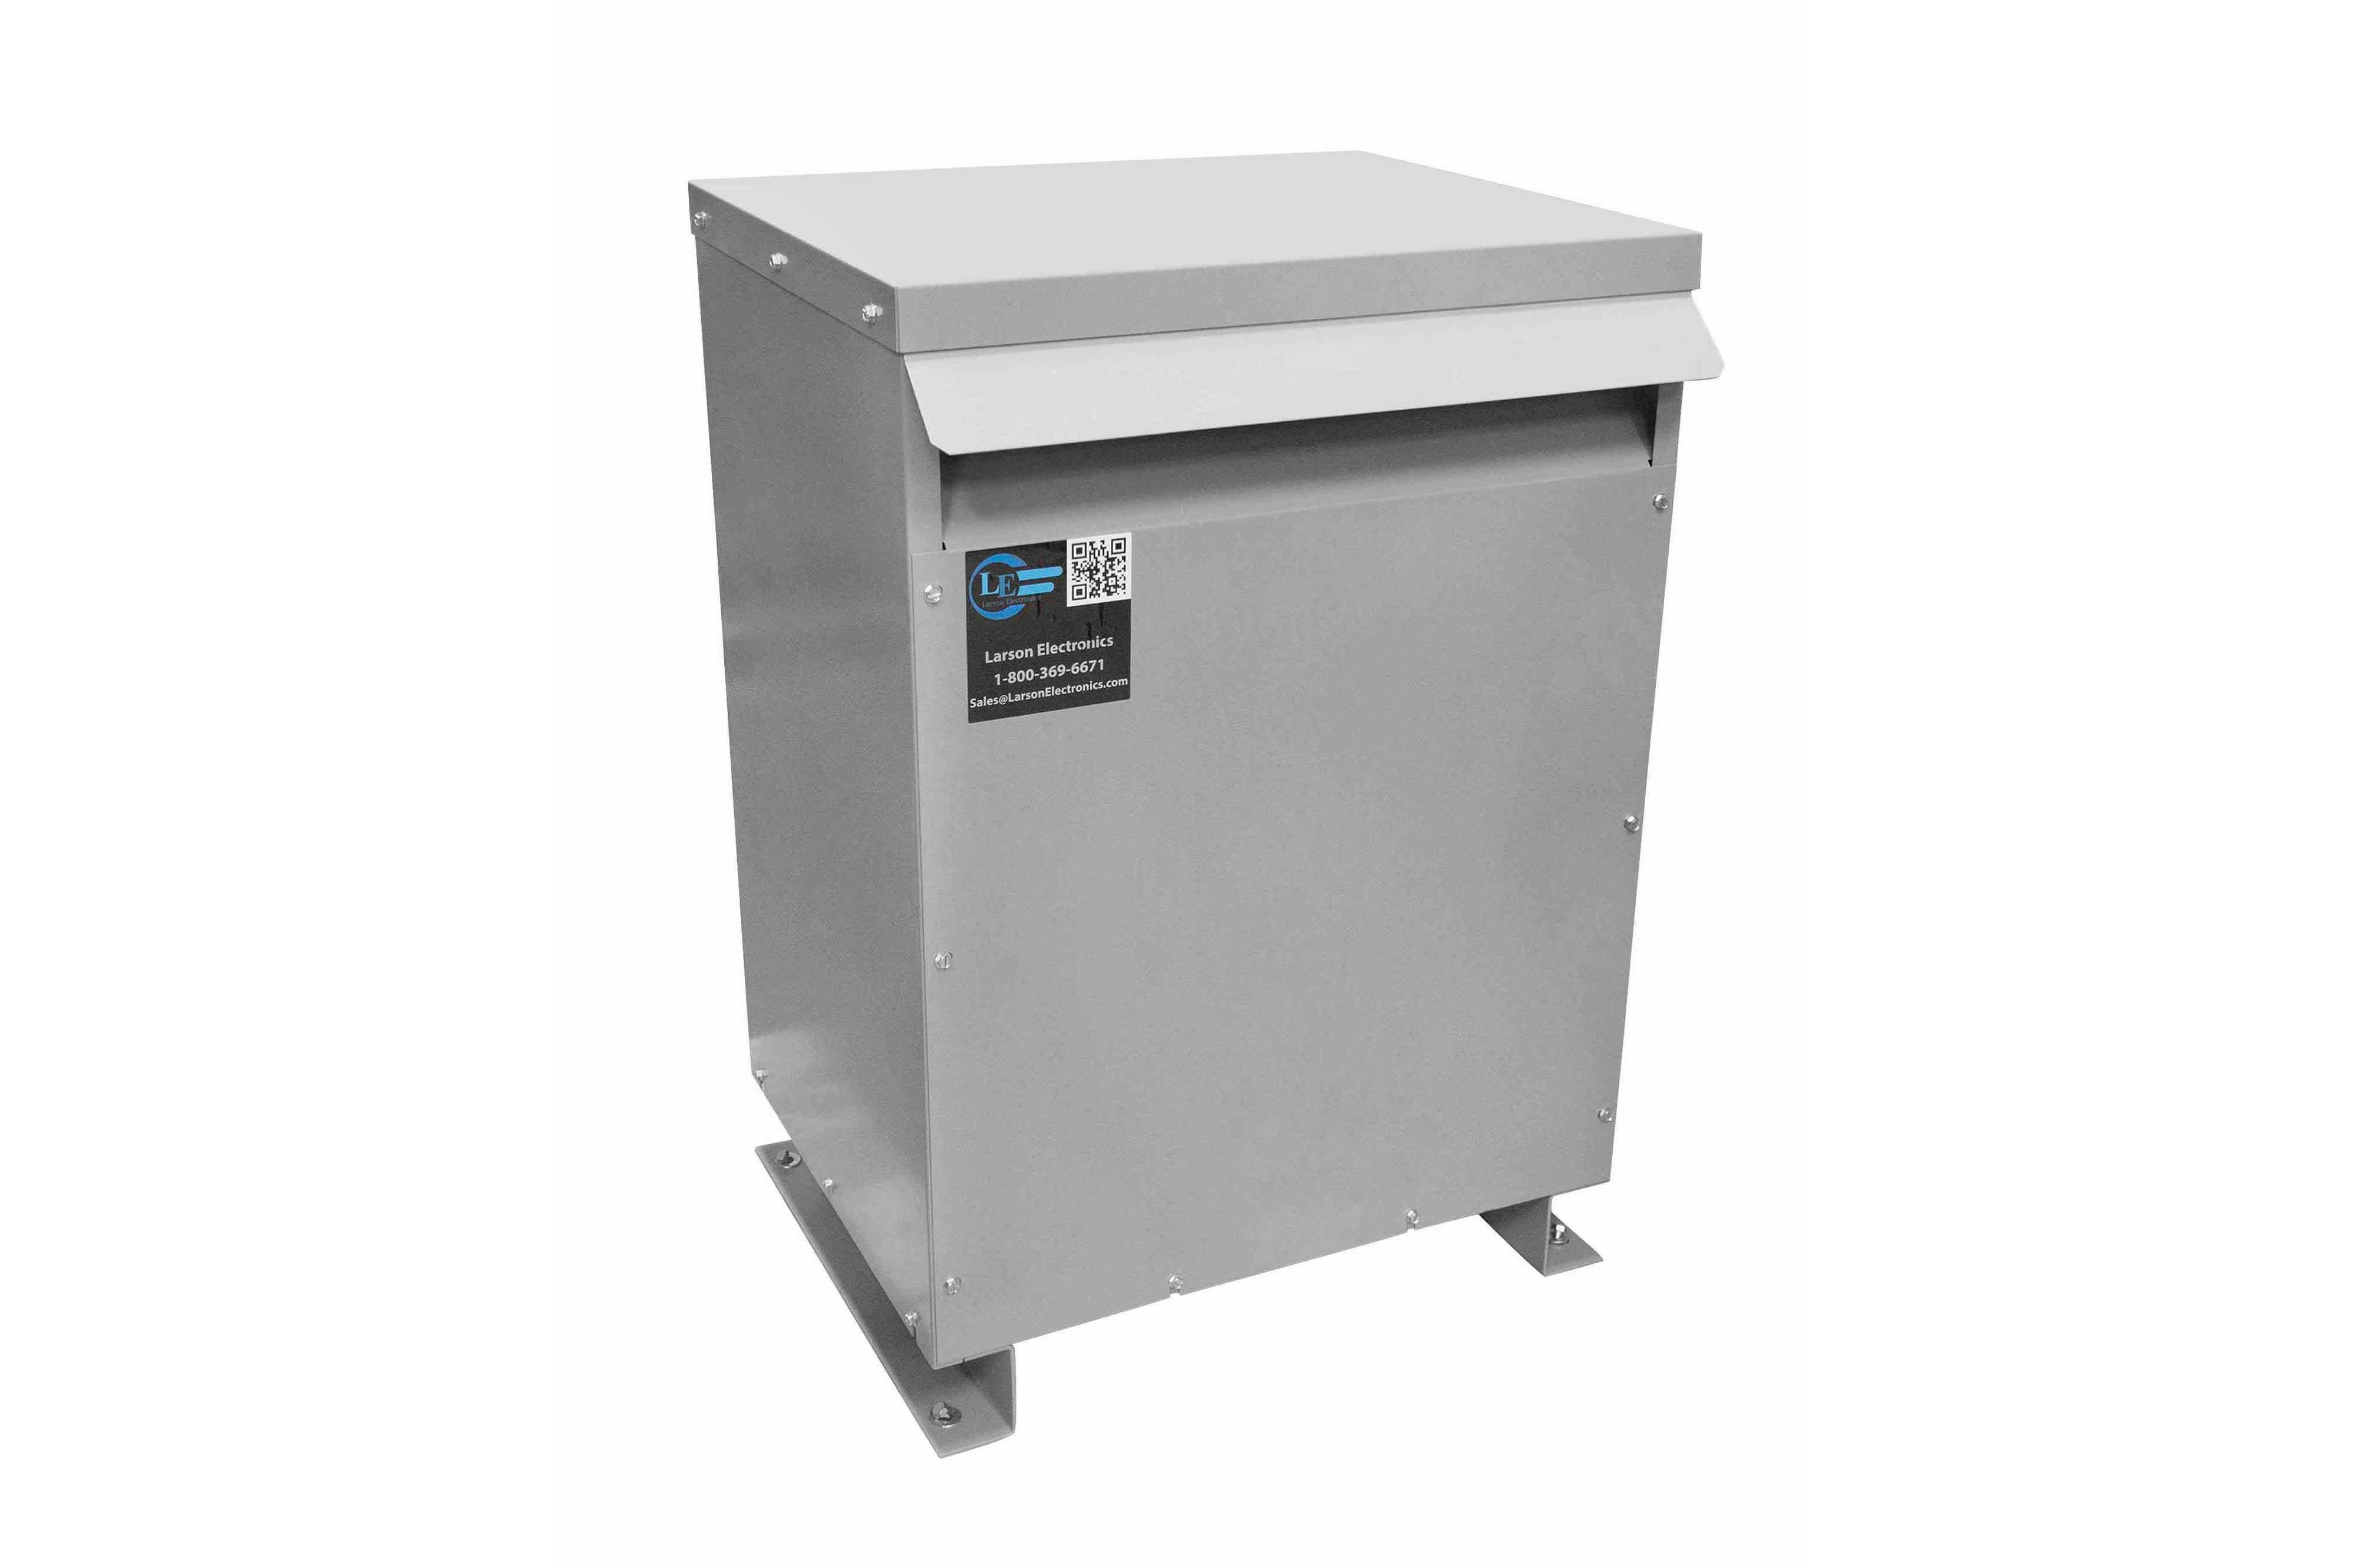 15 kVA 3PH Isolation Transformer, 575V Wye Primary, 480Y/277 Wye-N Secondary, N3R, Ventilated, 60 Hz